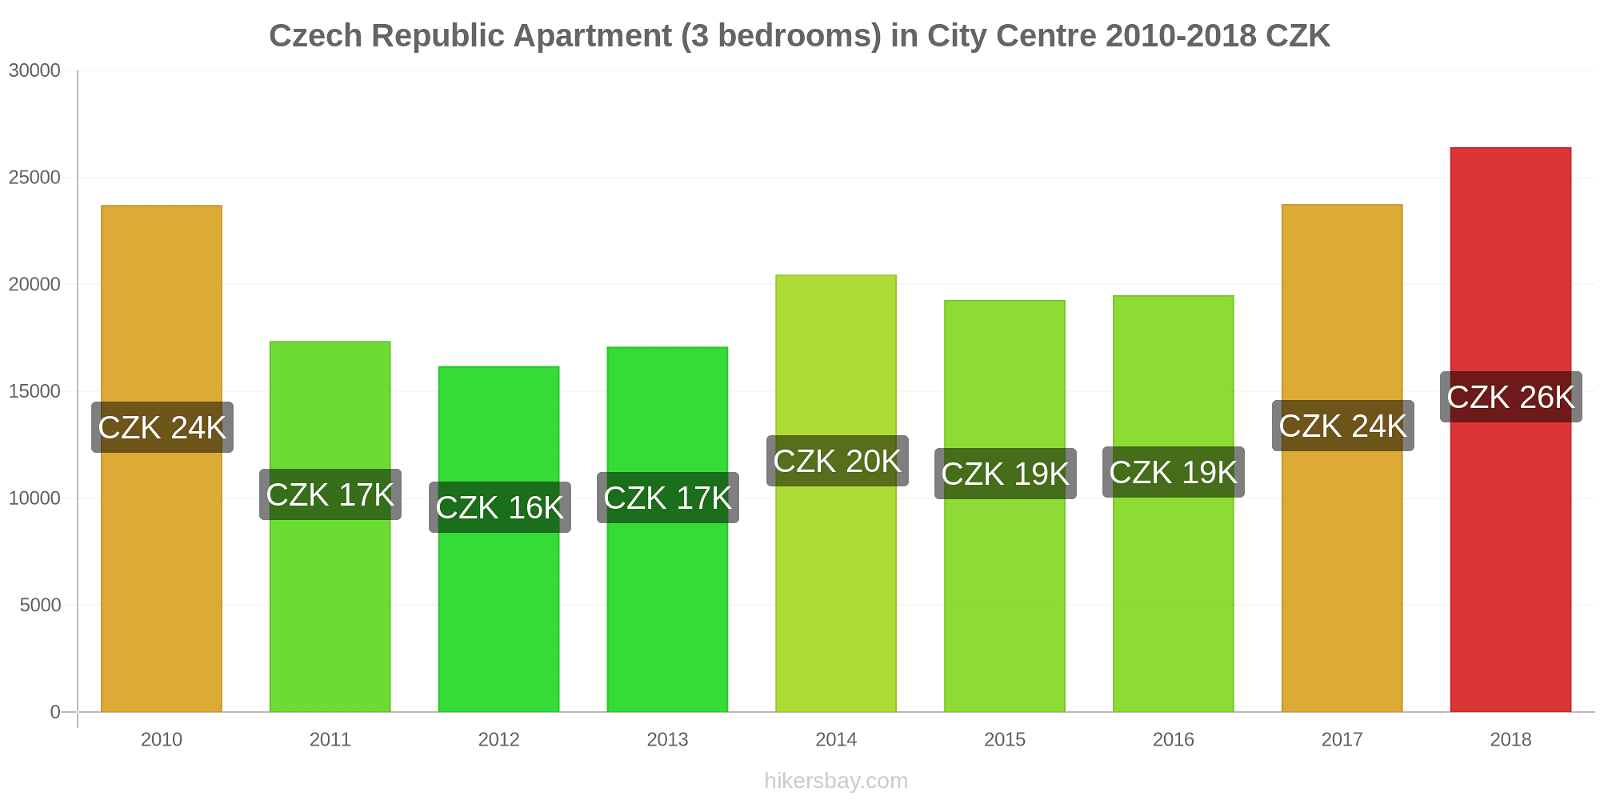 Czech Republic price changes Apartment (3 bedrooms) in City Centre hikersbay.com